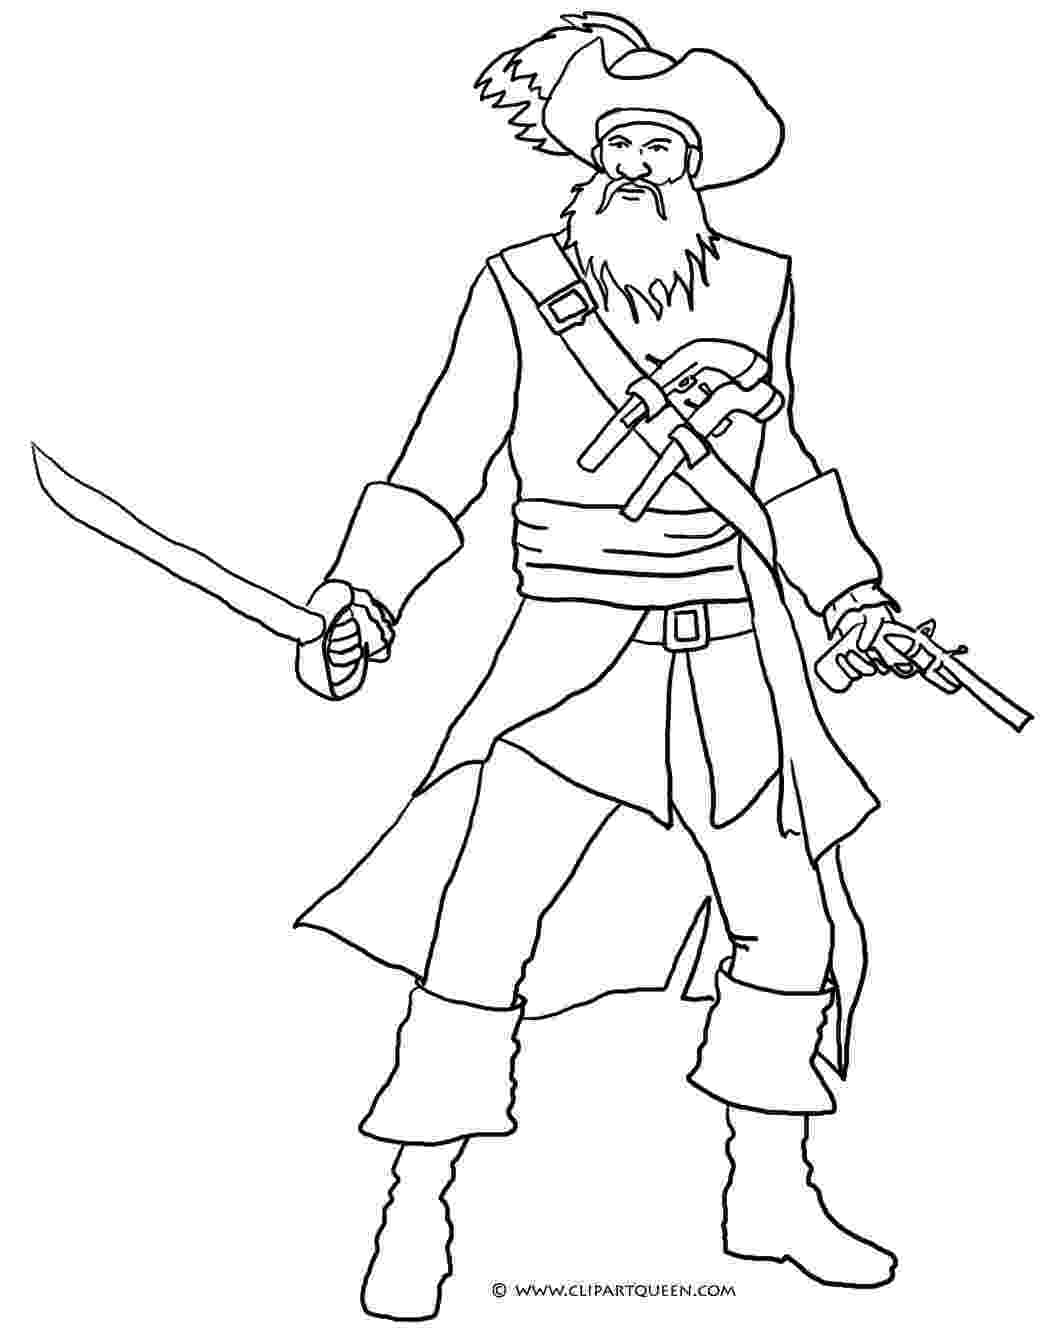 pirates coloring pages here are some pirate theme colouring pages for you to pages pirates coloring